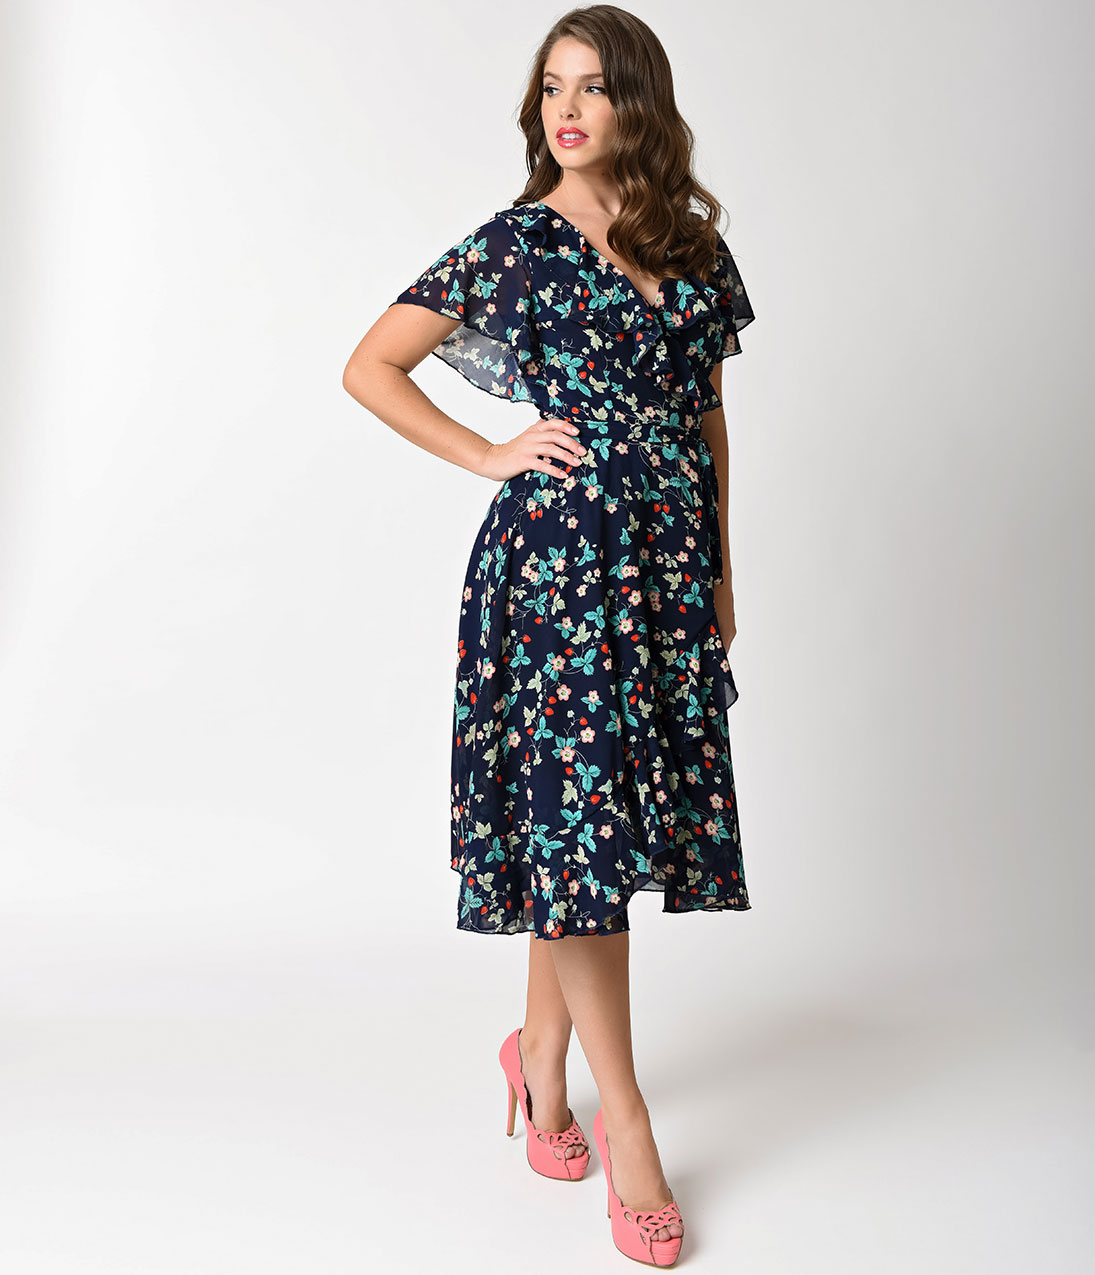 1940s dresses 1940s style dresses and clothing unique vintage 1940s navy blue strawberry  florals chiffon dotty fcwyneq